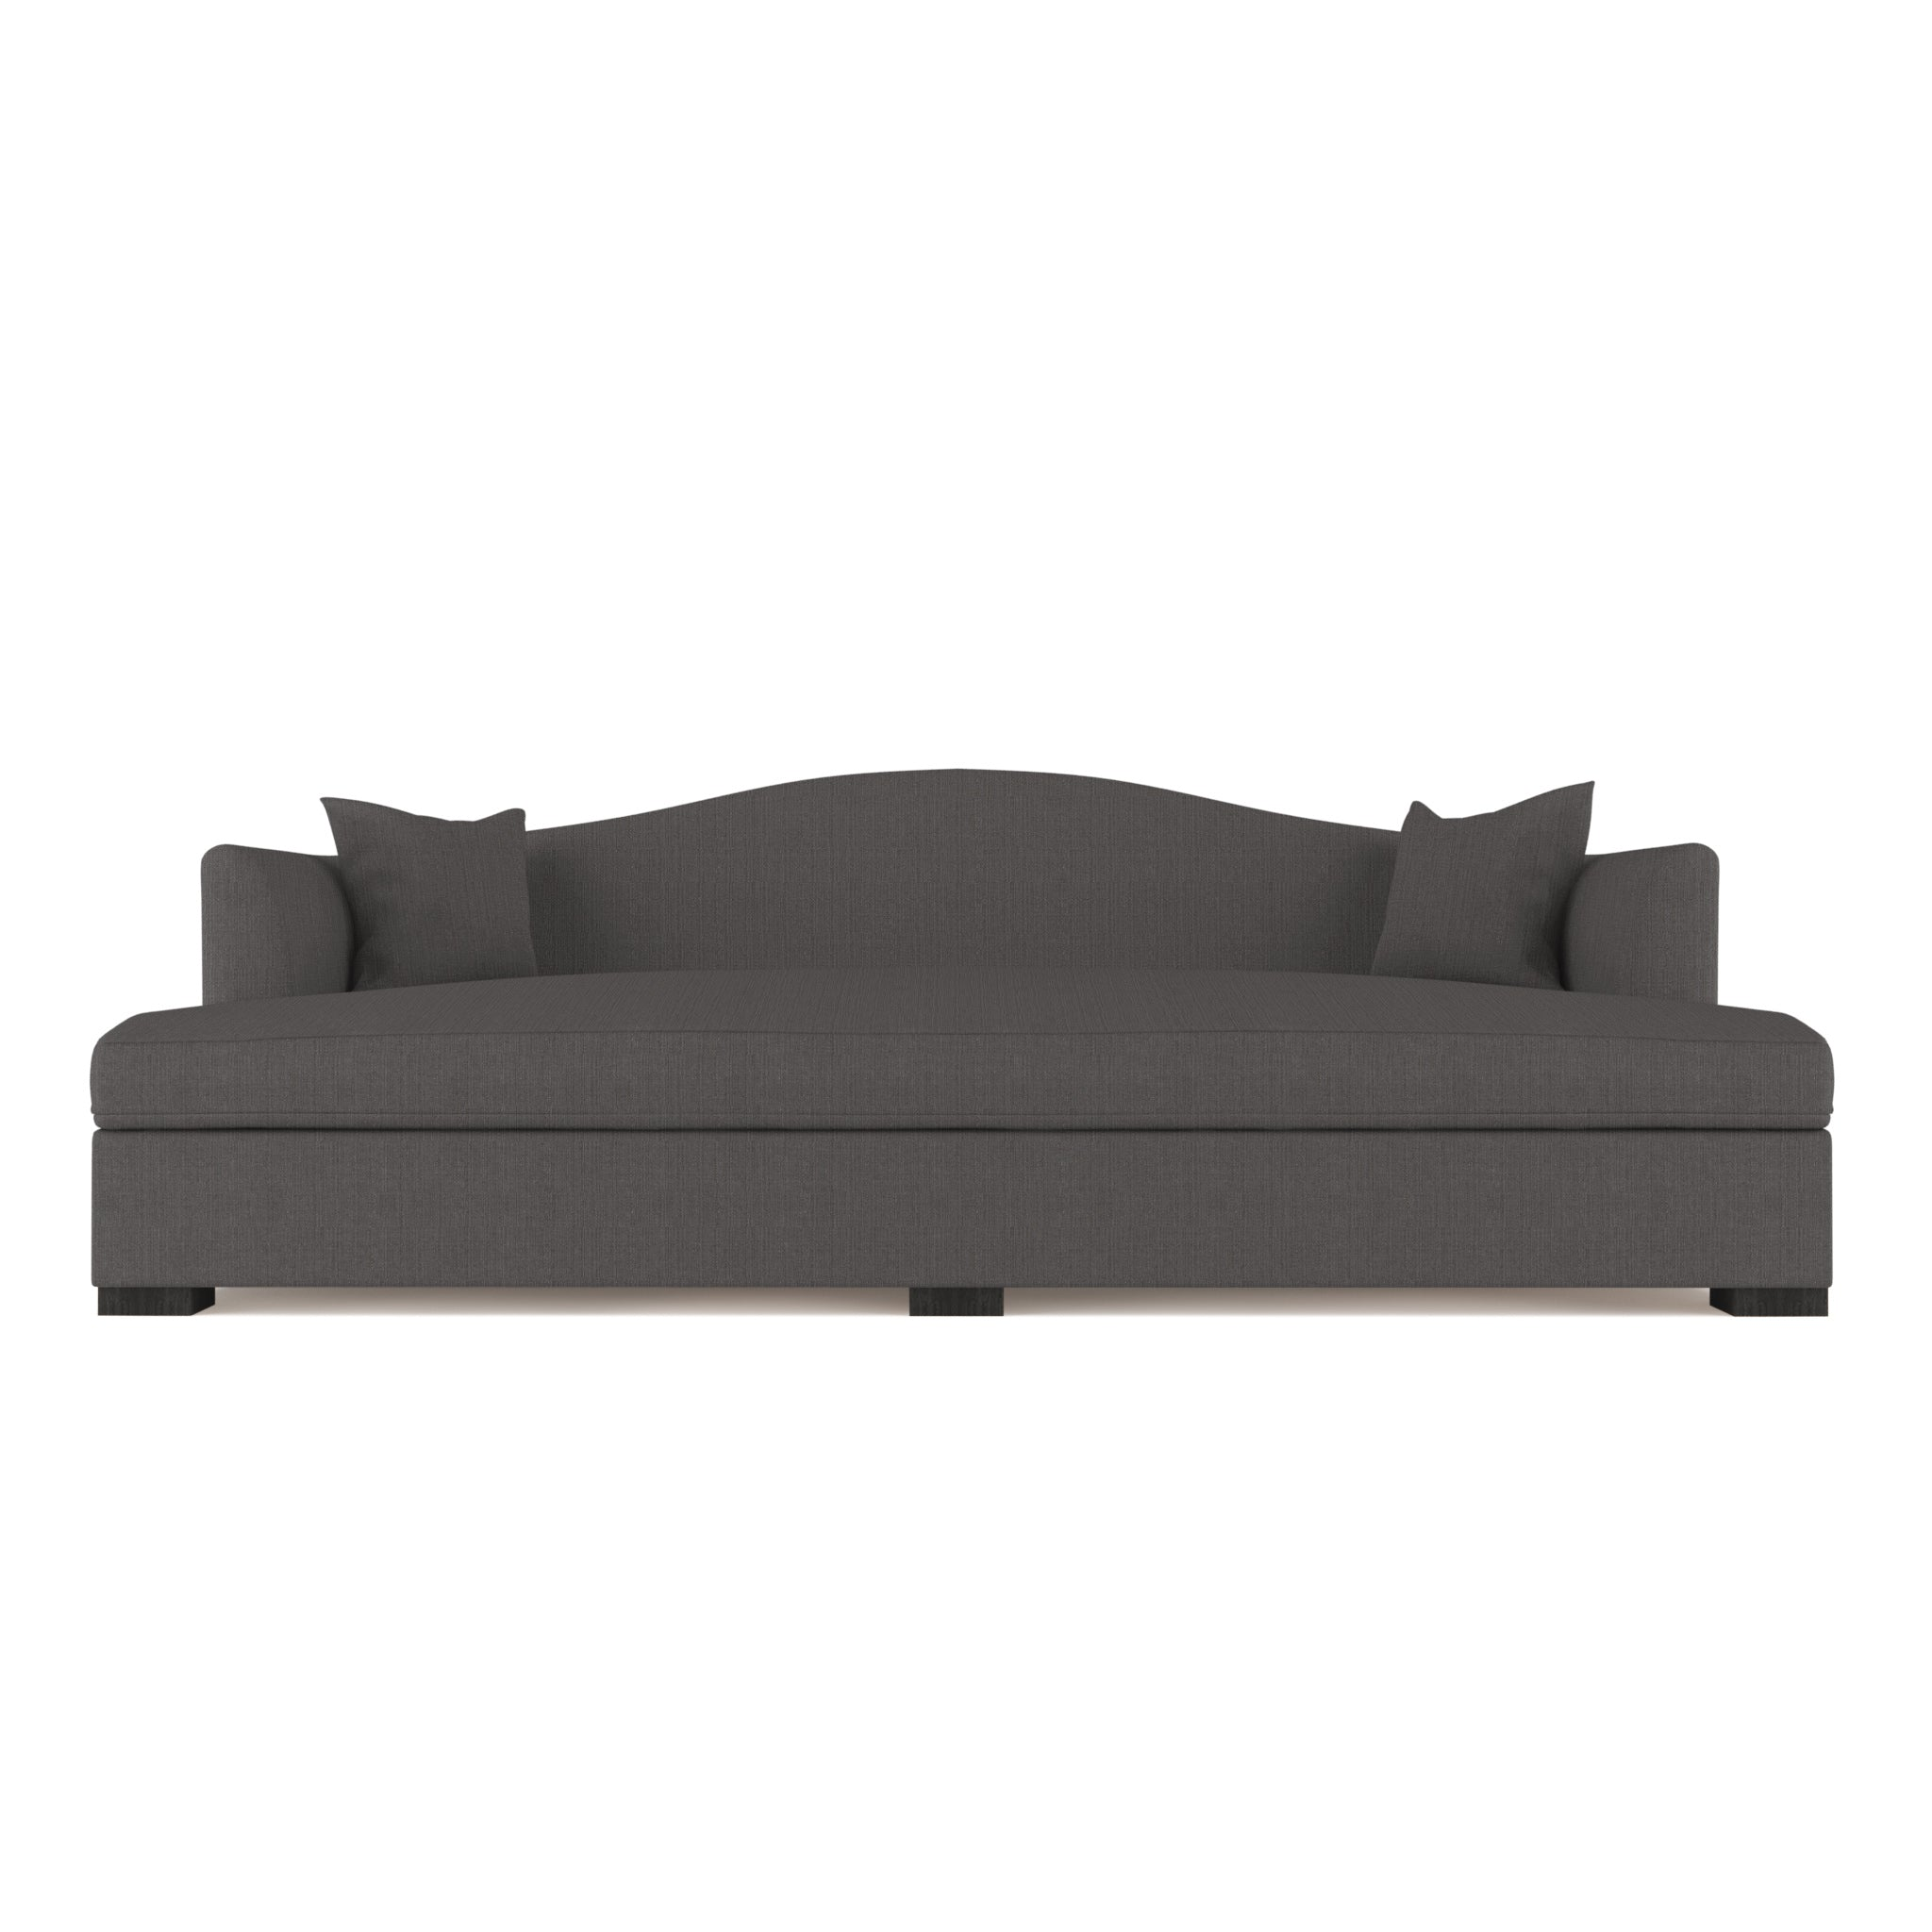 Horatio Daybed - Graphite Box Weave Linen